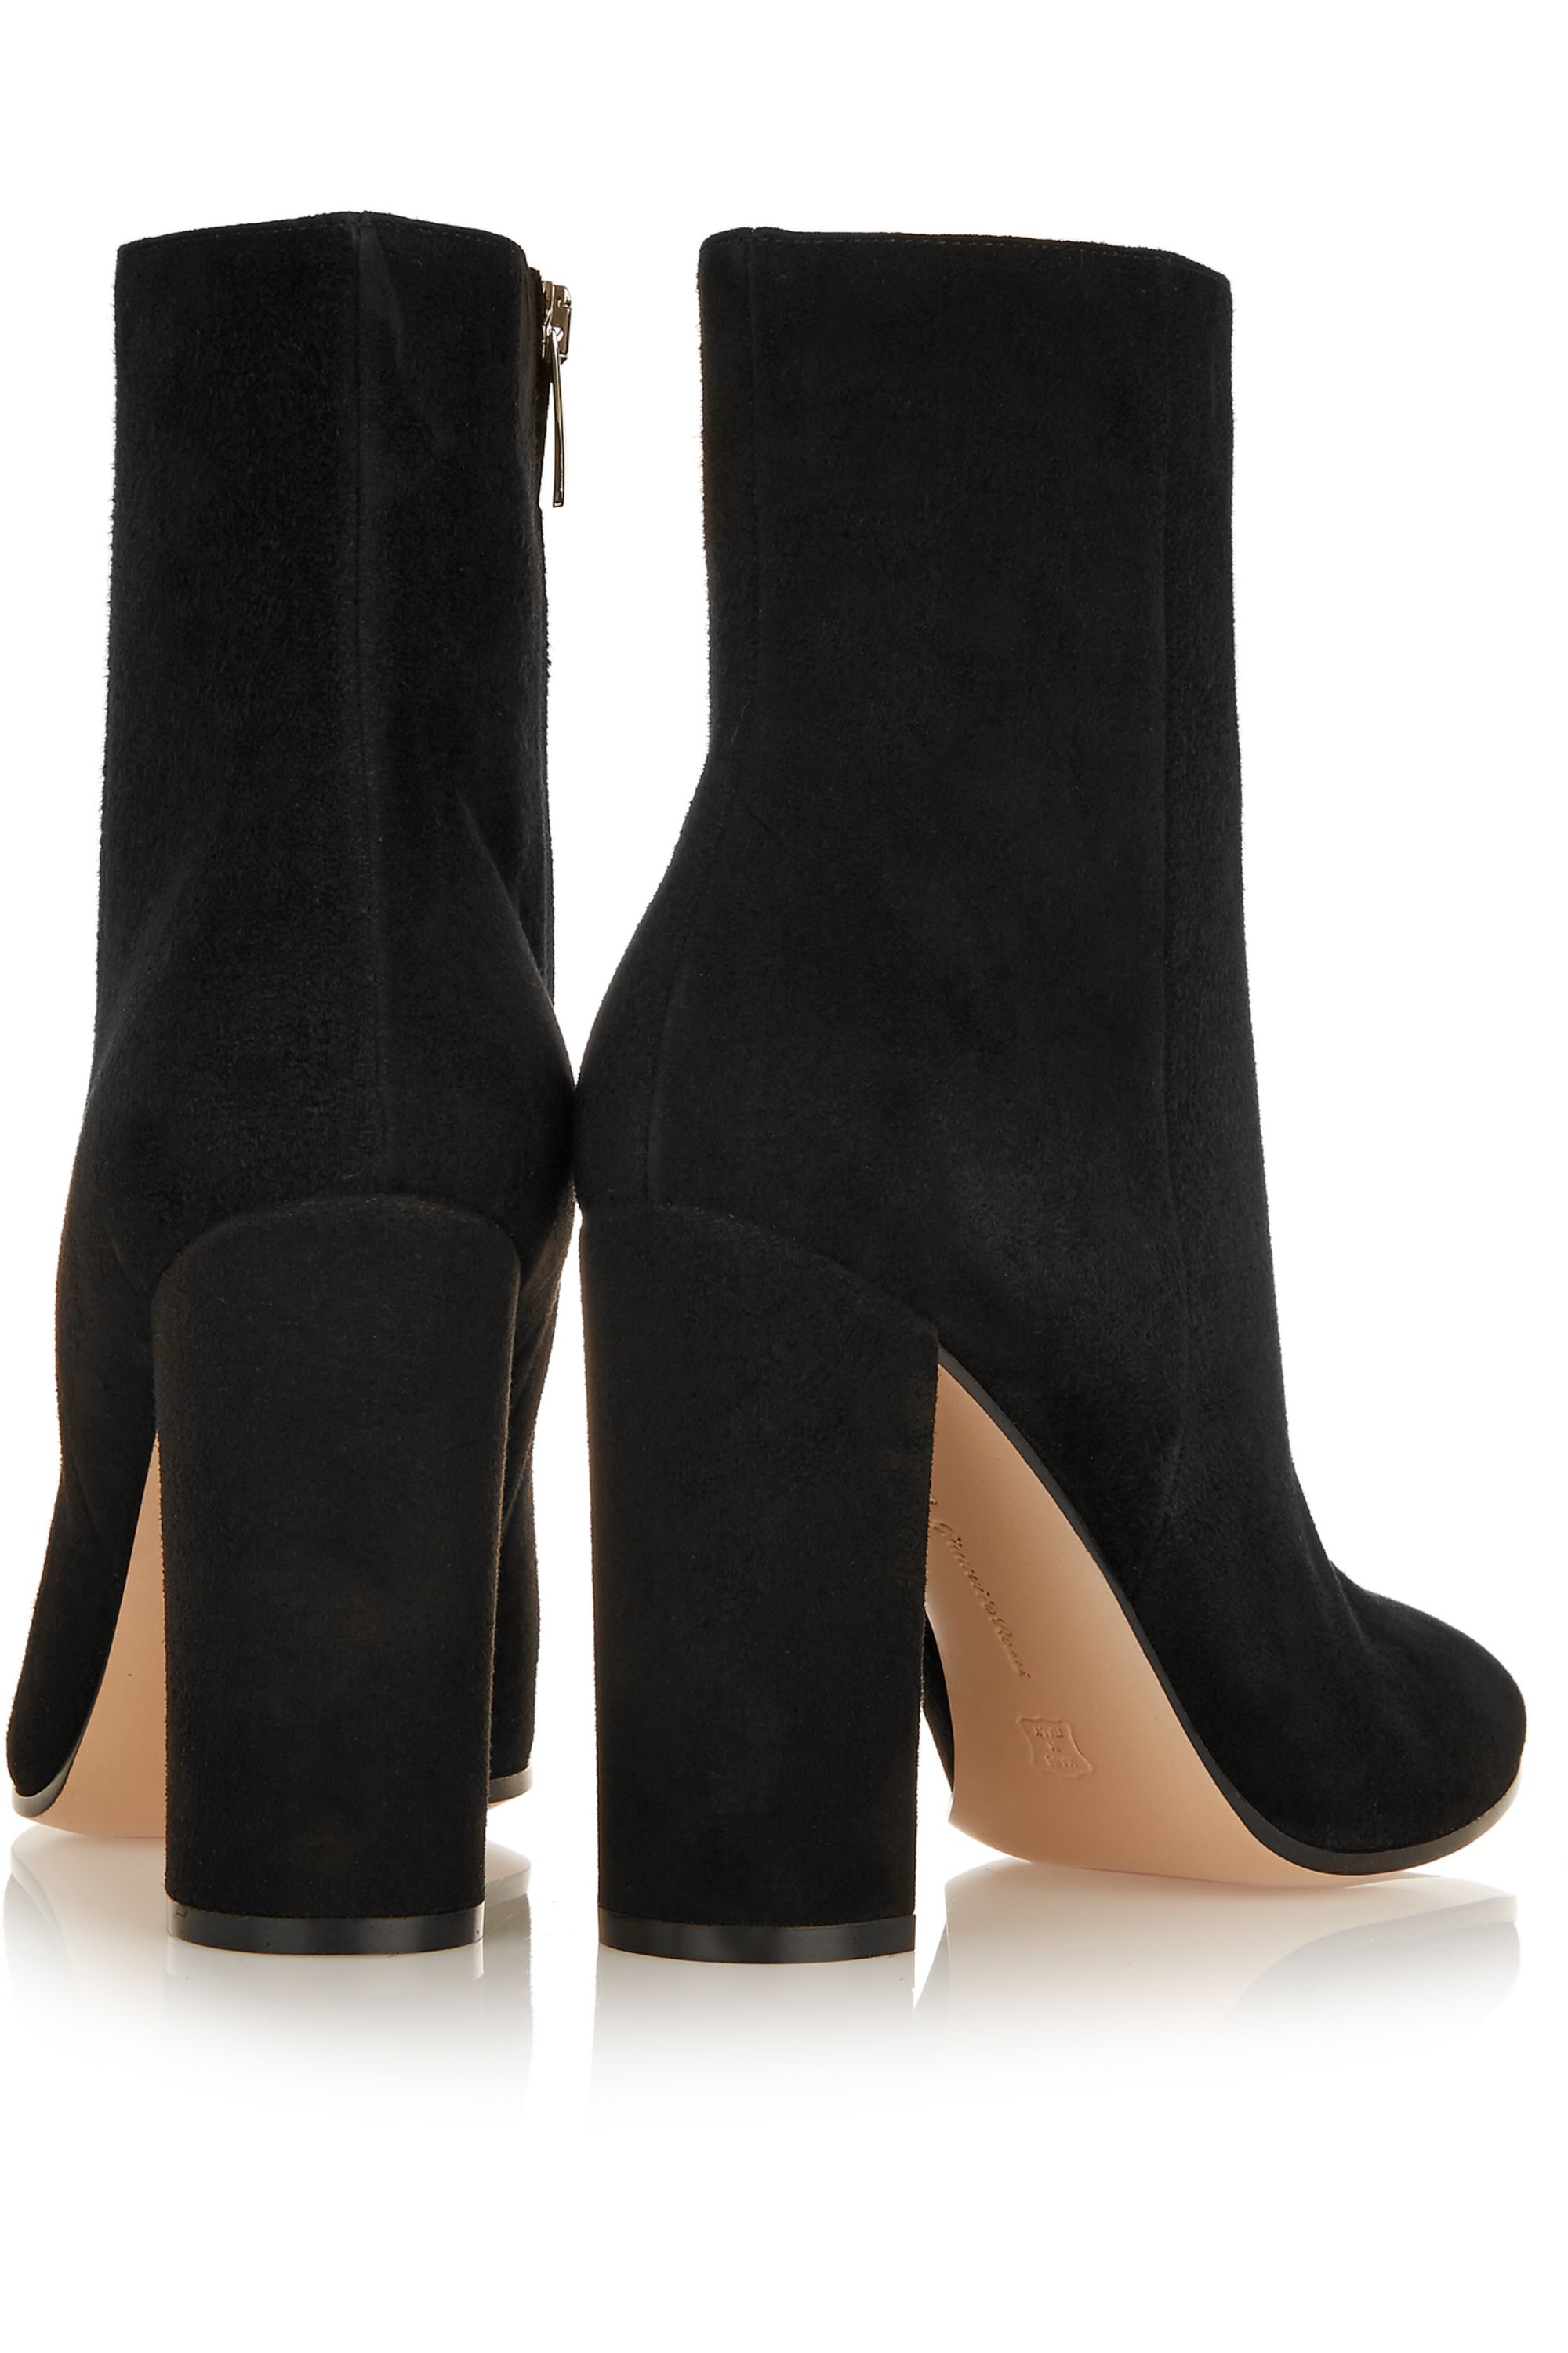 Gianvito Rossi Suede boots